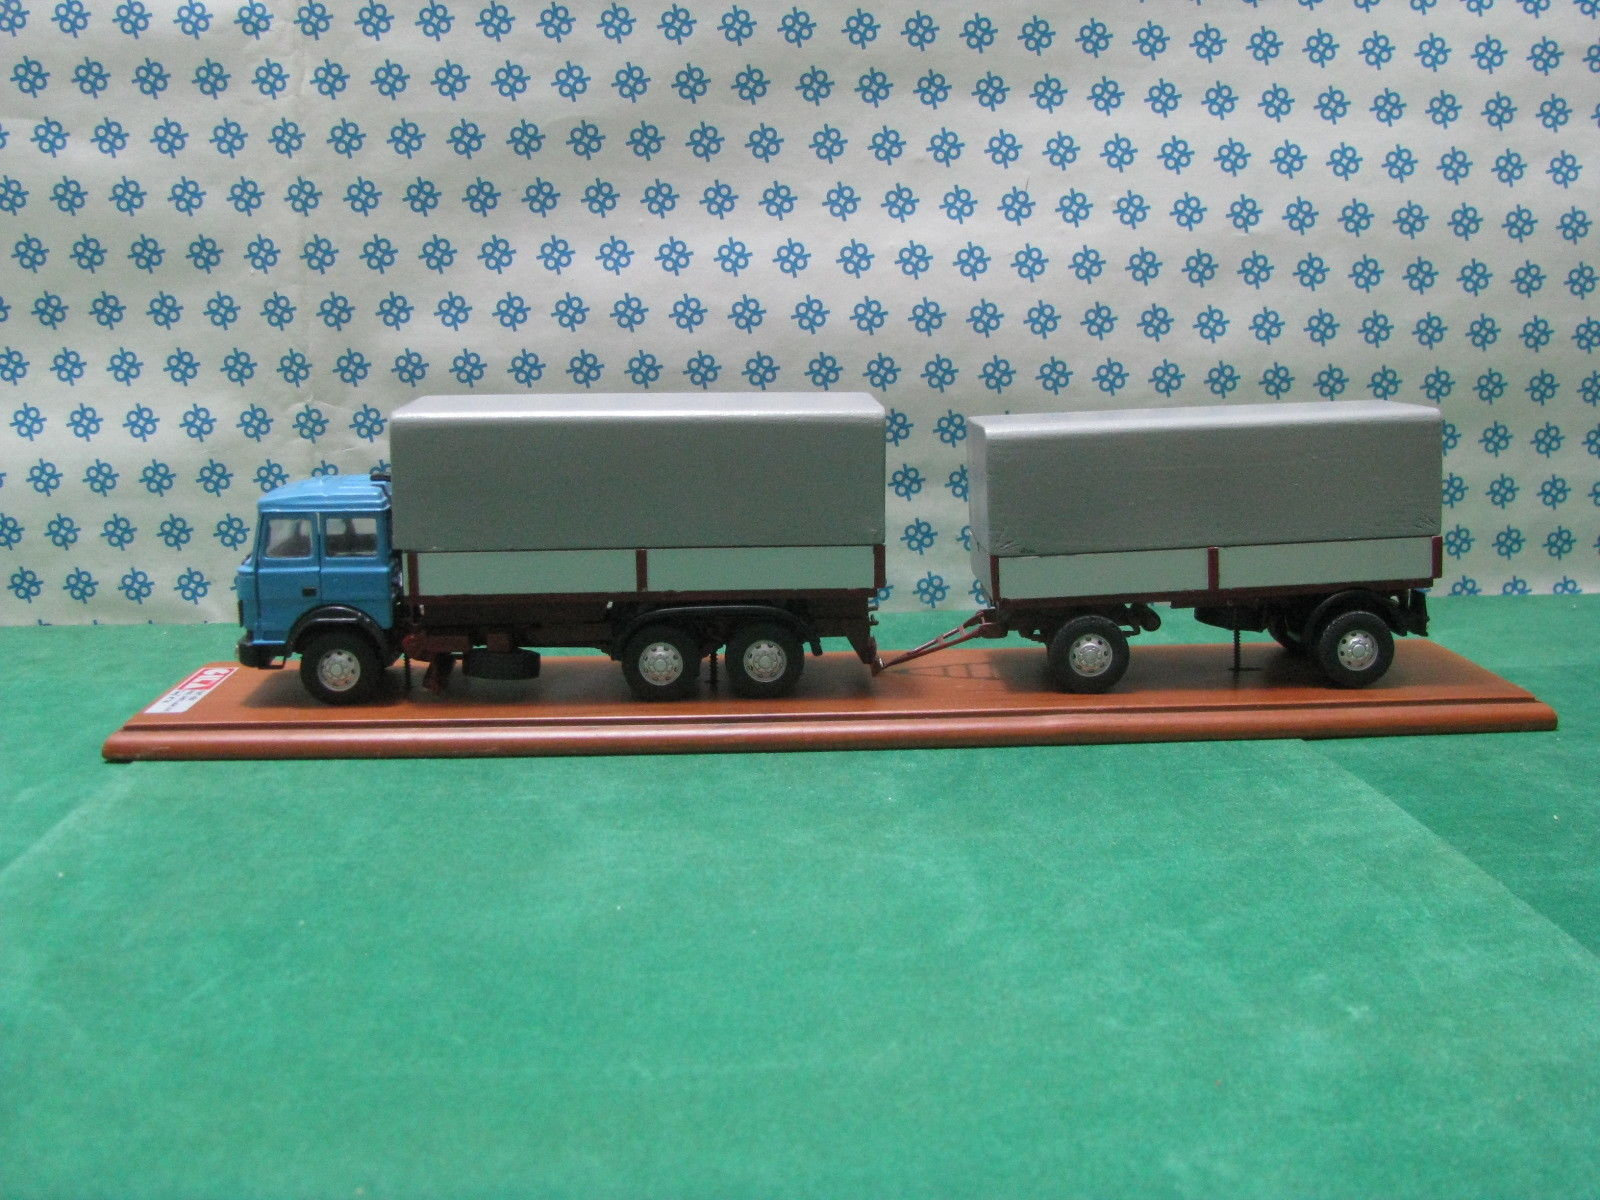 Vintage Truck - FIAT 190 telonate 3 axles with tea trailer - 1/43 Gila Models Trasf. 14 Hand Made Built Factory - Made in Italy 1989, used for sale